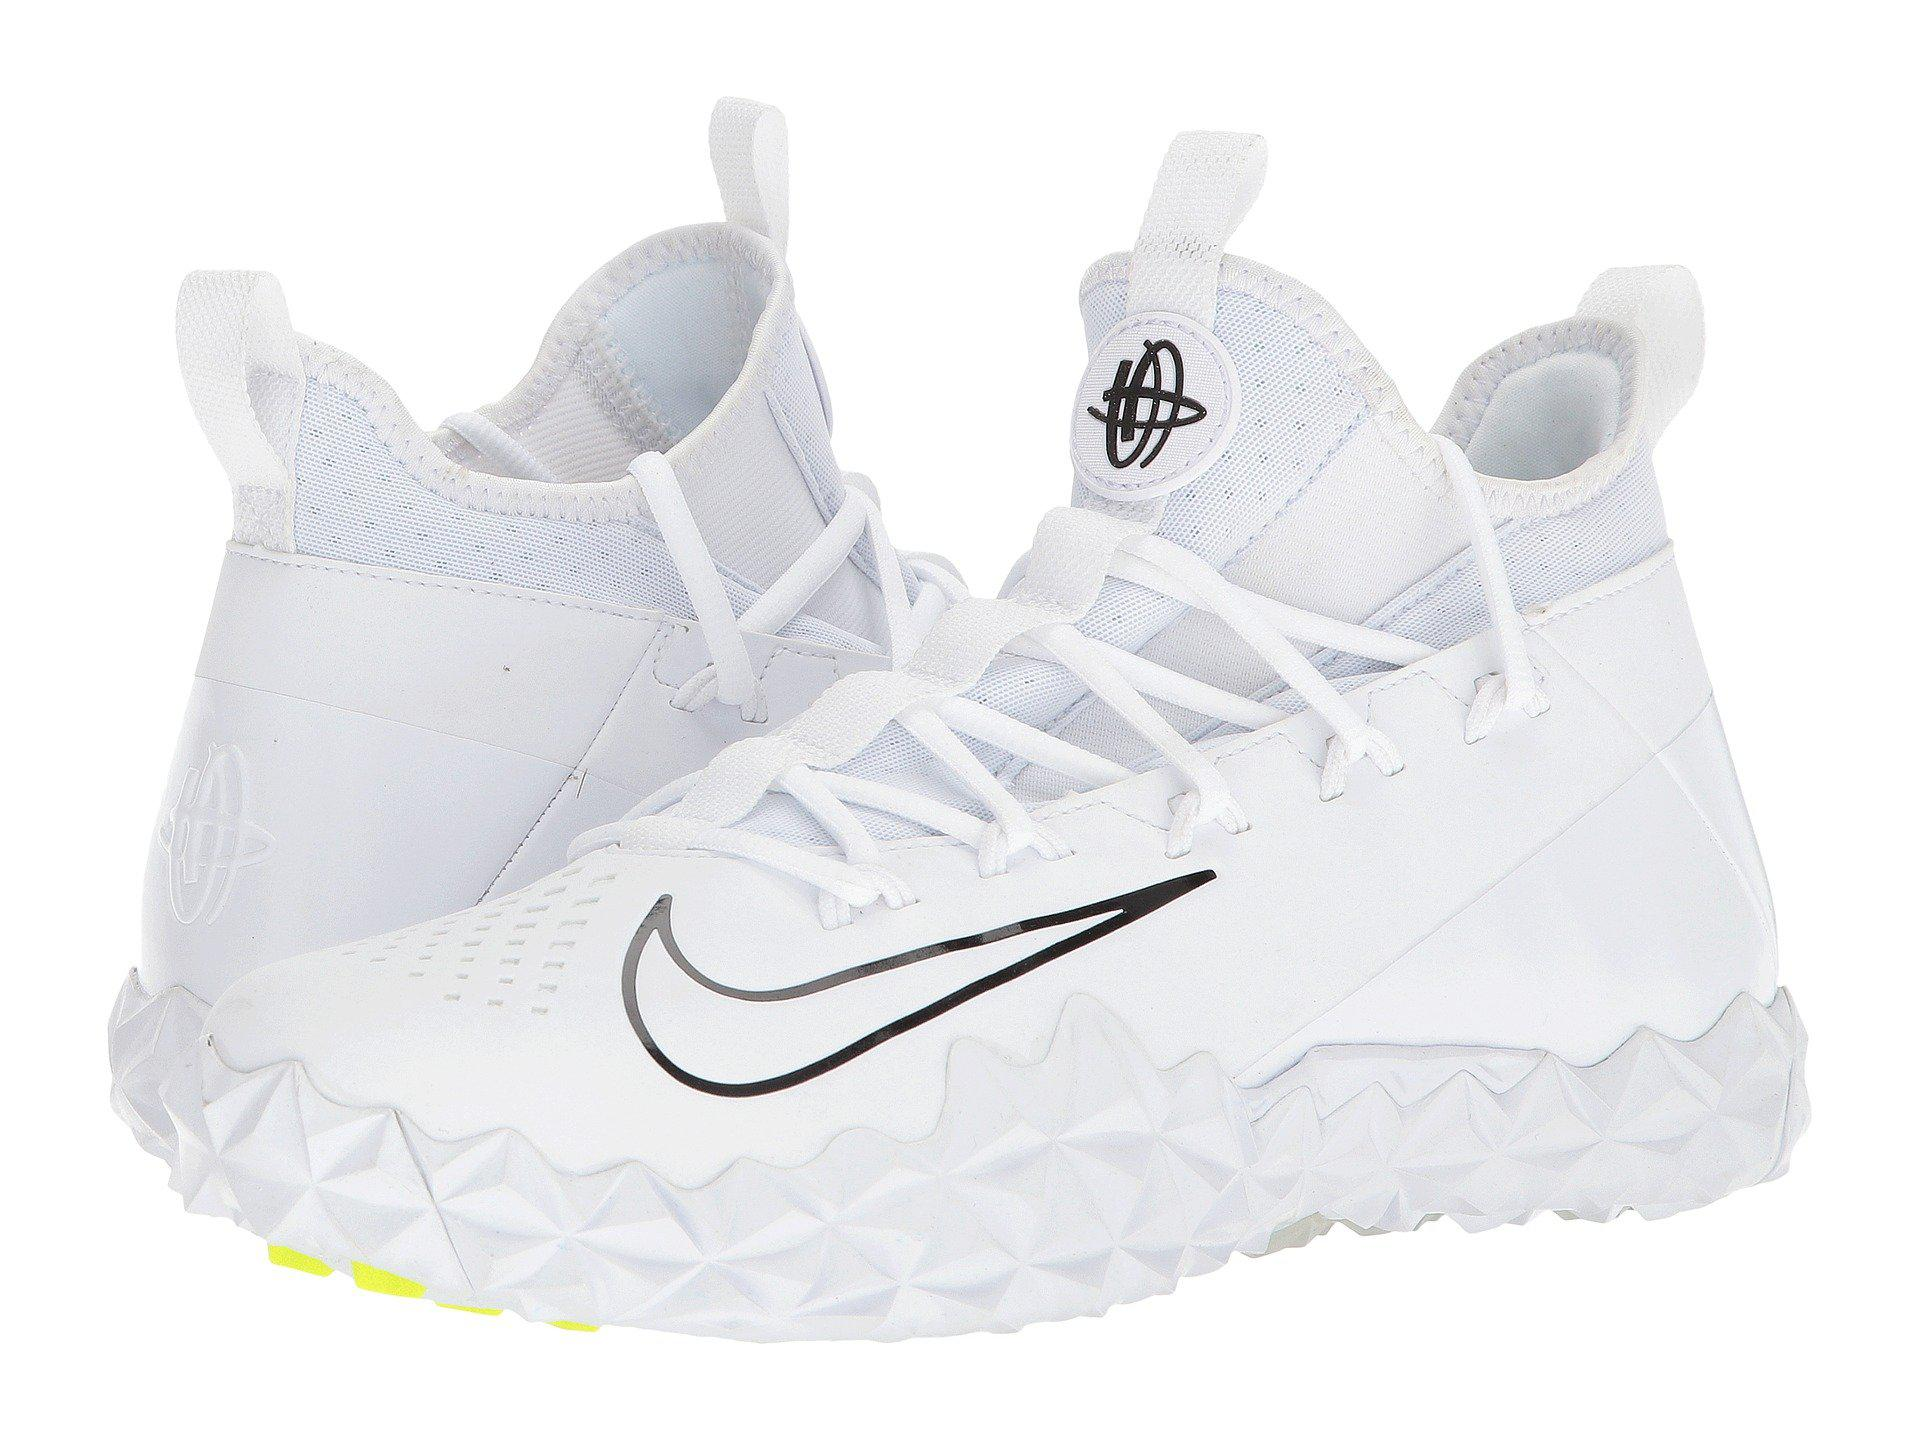 new concept 2a34d 57cfb Nike Alpha Huarache 6 Elt Turf Lax in White for Men - Lyst